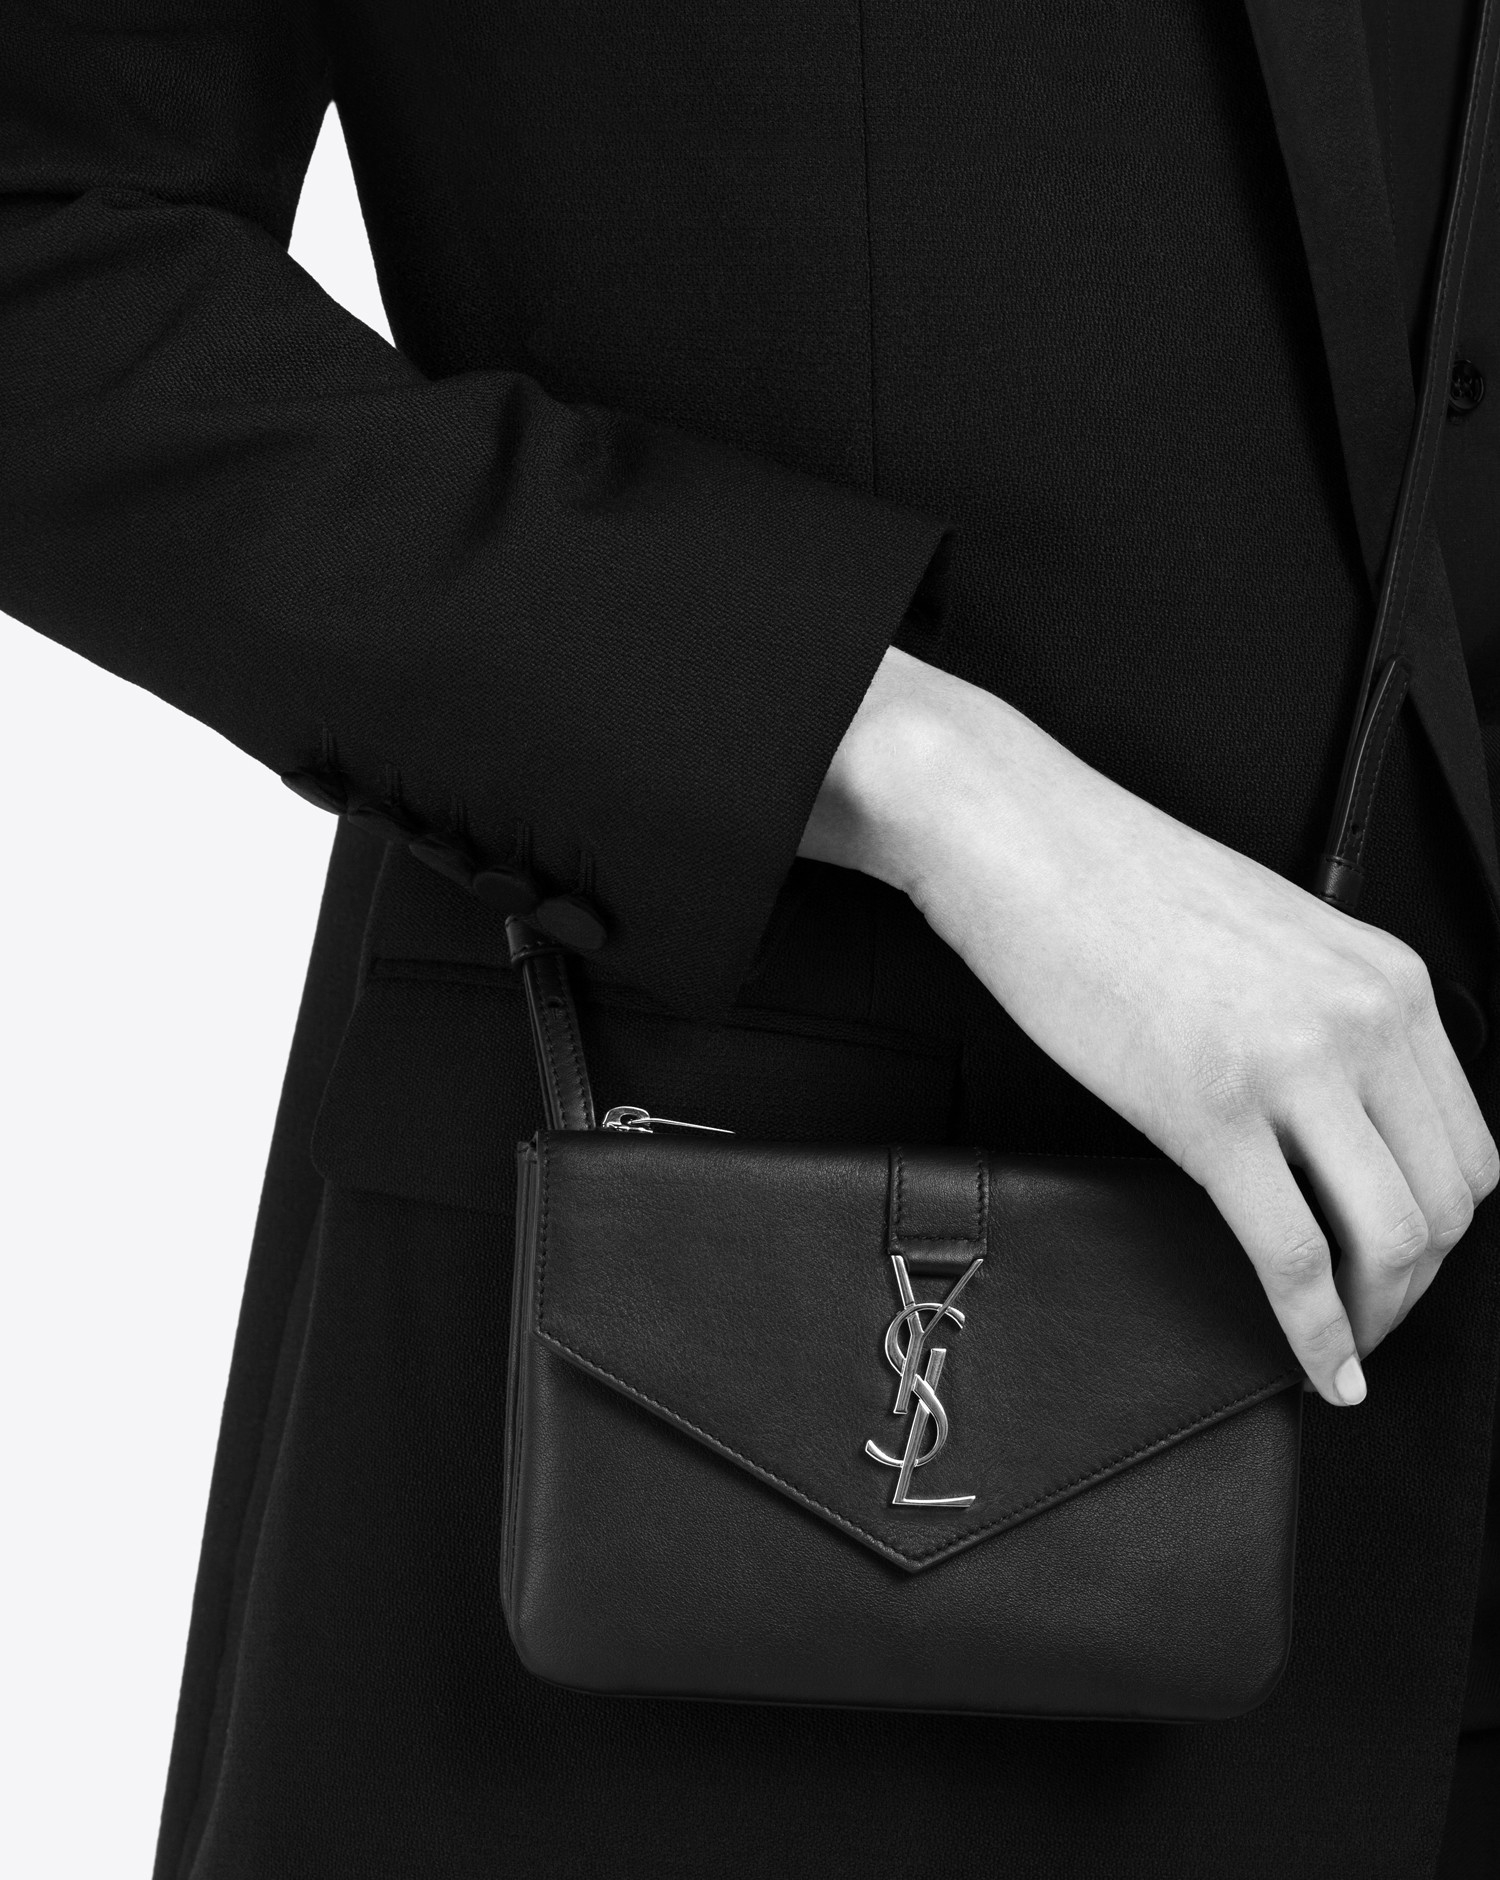 358ff688f477 Lyst - Saint Laurent Ysl Tri-pocket Bag In Dove White Leather